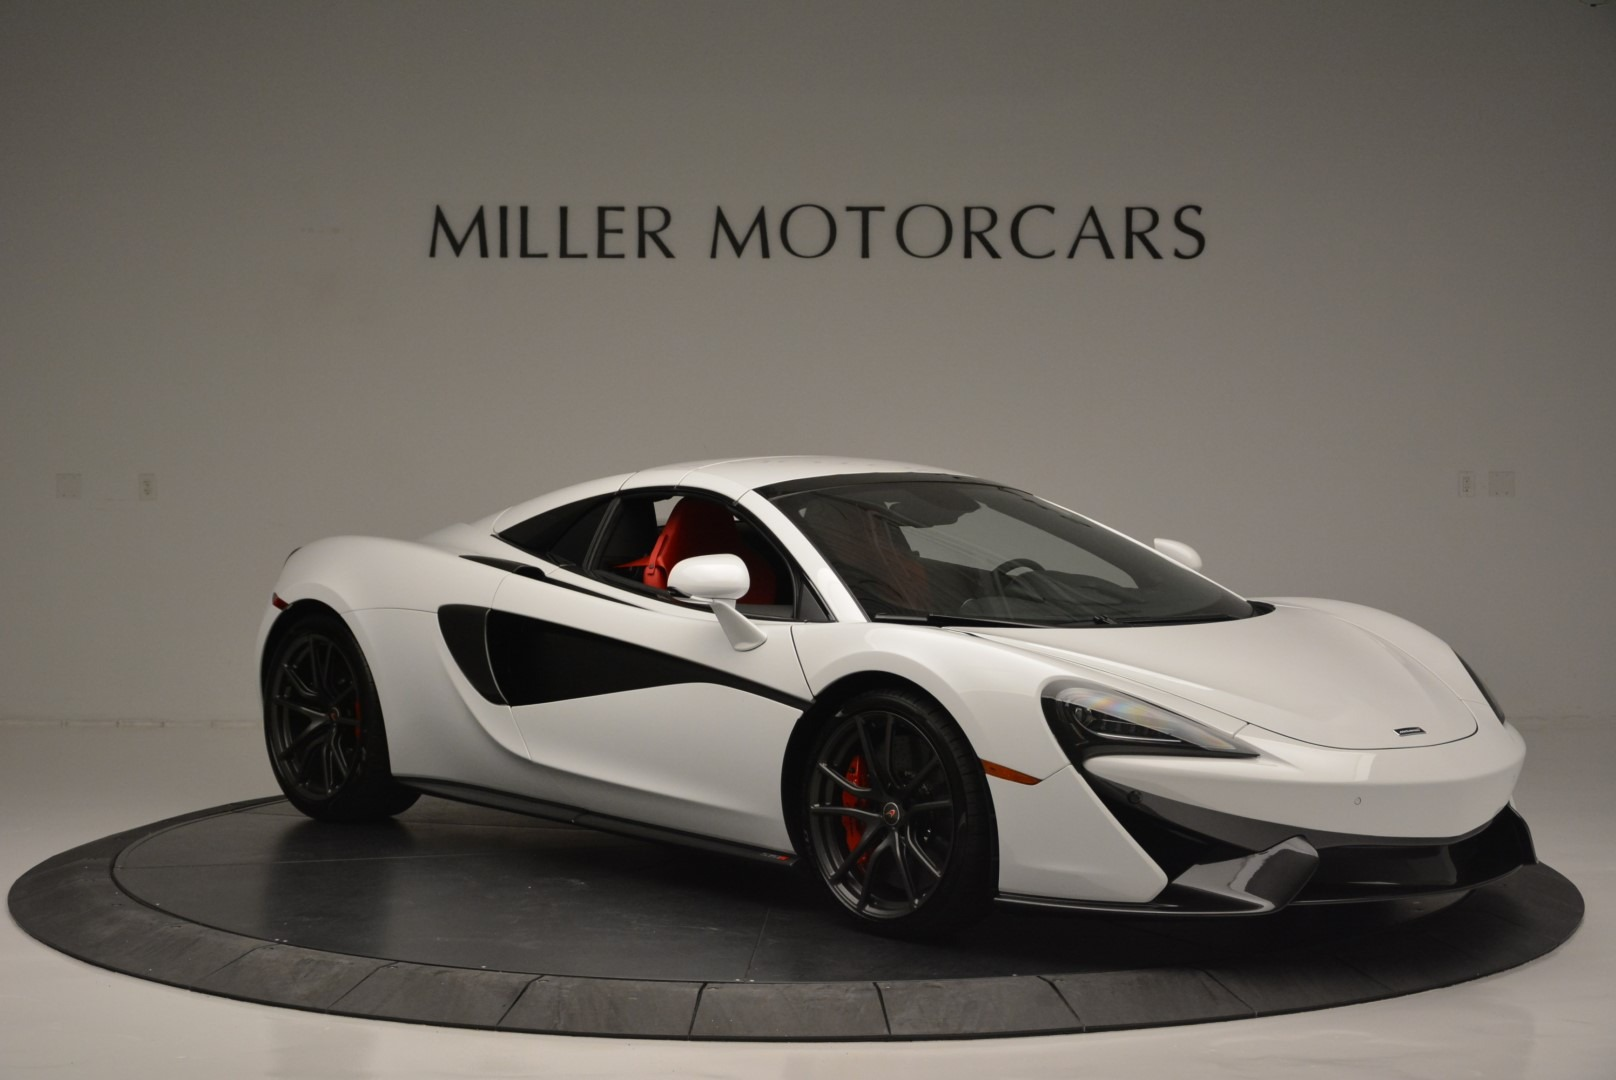 Used 2018 McLaren 570S Spider For Sale In Greenwich, CT. Alfa Romeo of Greenwich, 3149 2341_p20